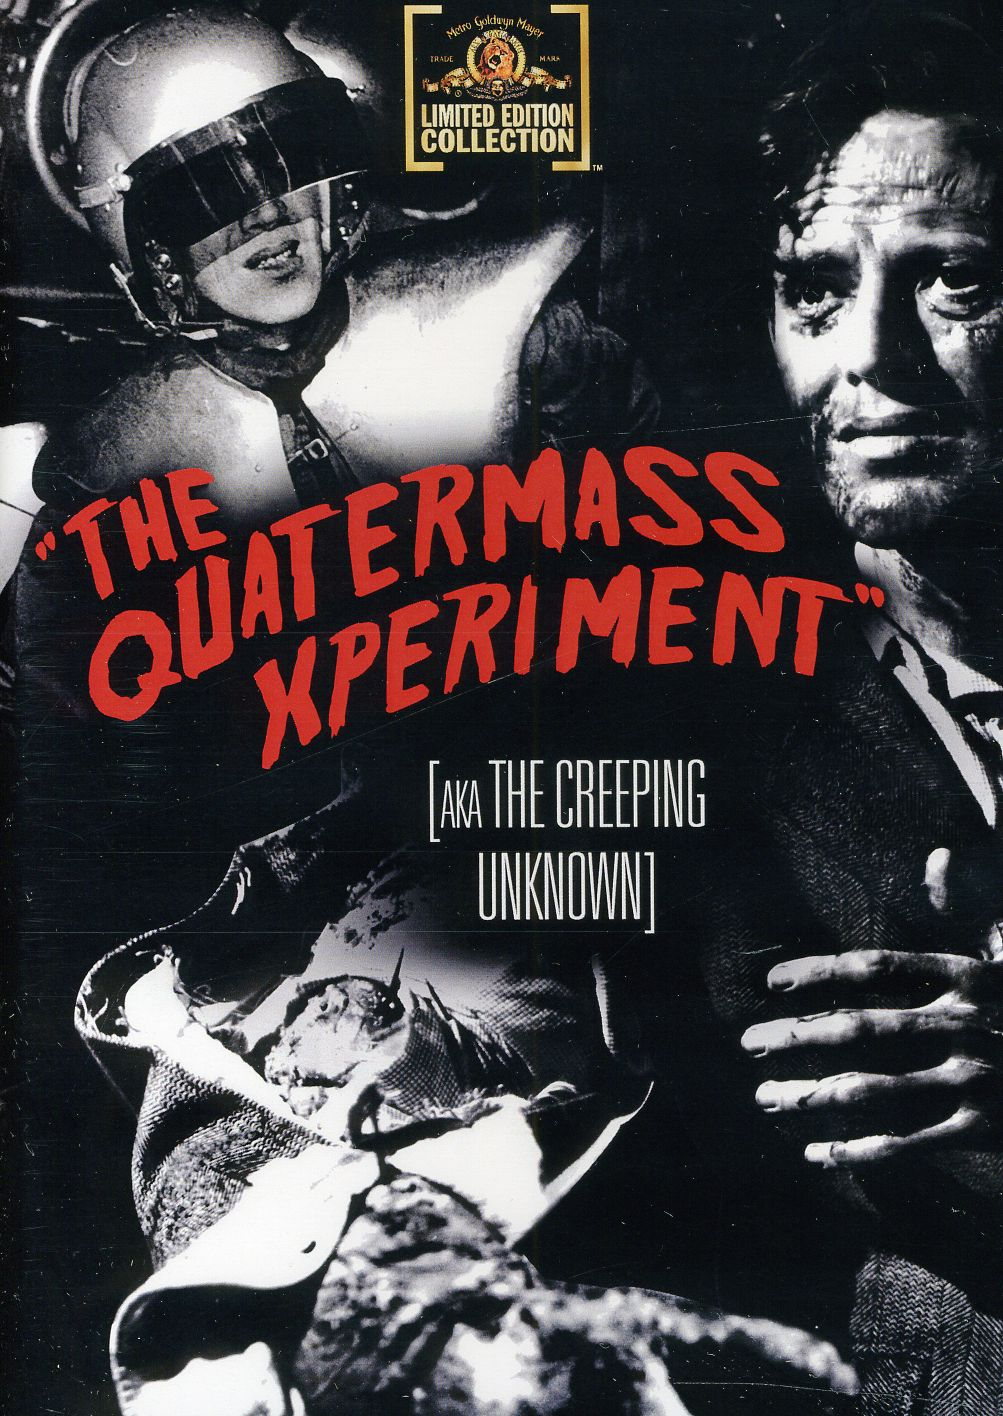 The Quatermass Xperiment (DVD)